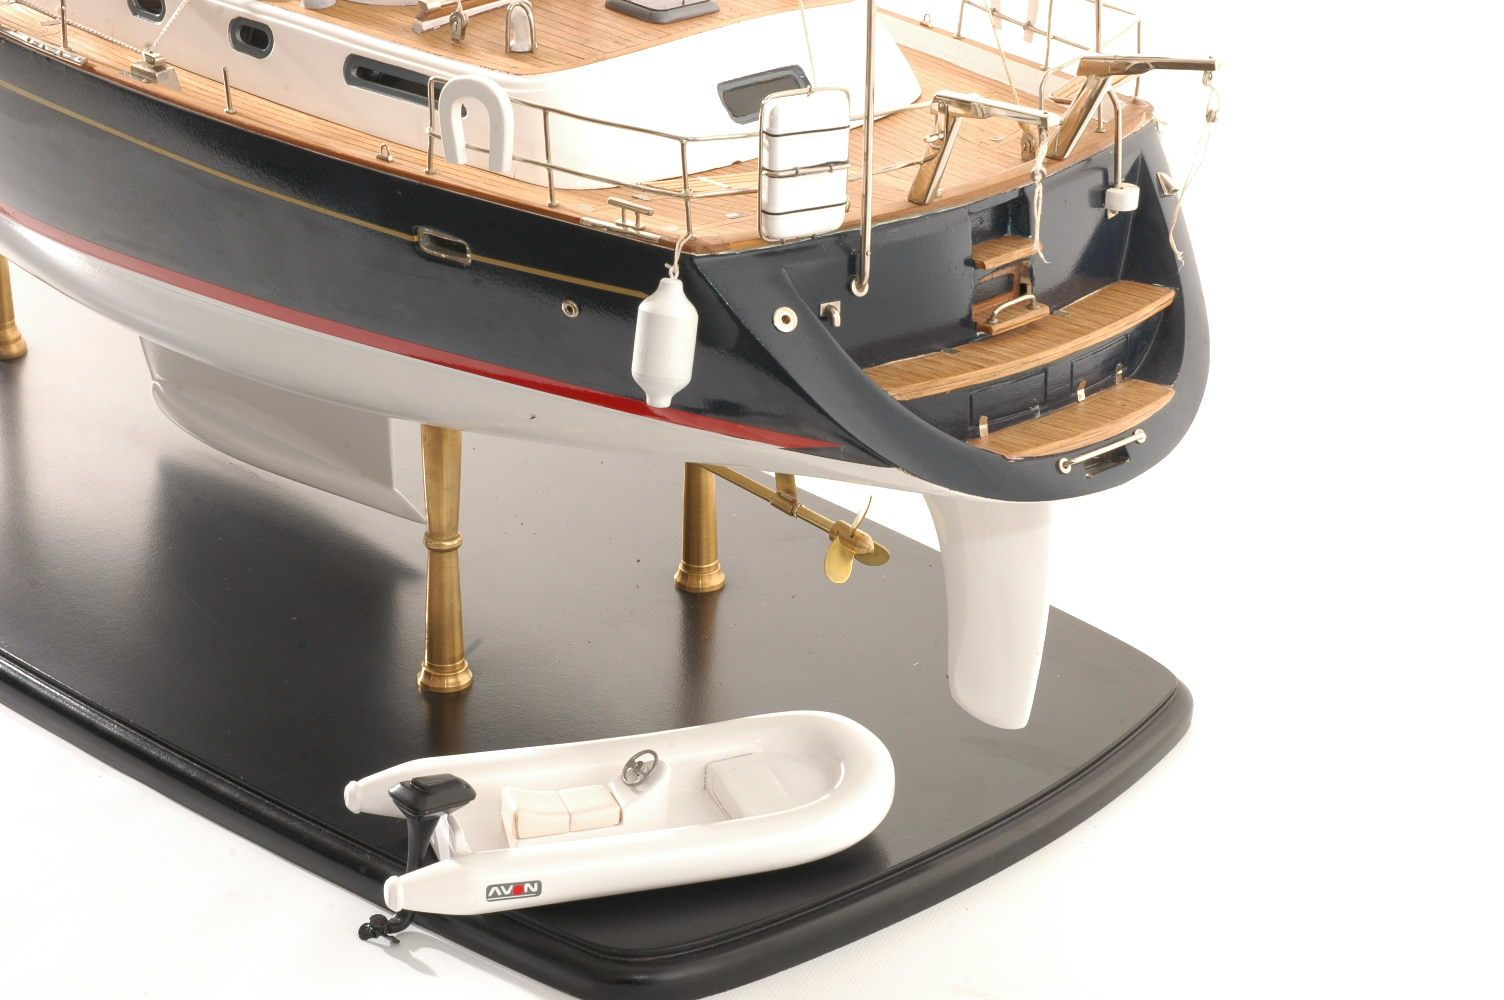 555-6283-Discovery-55-model-yacht